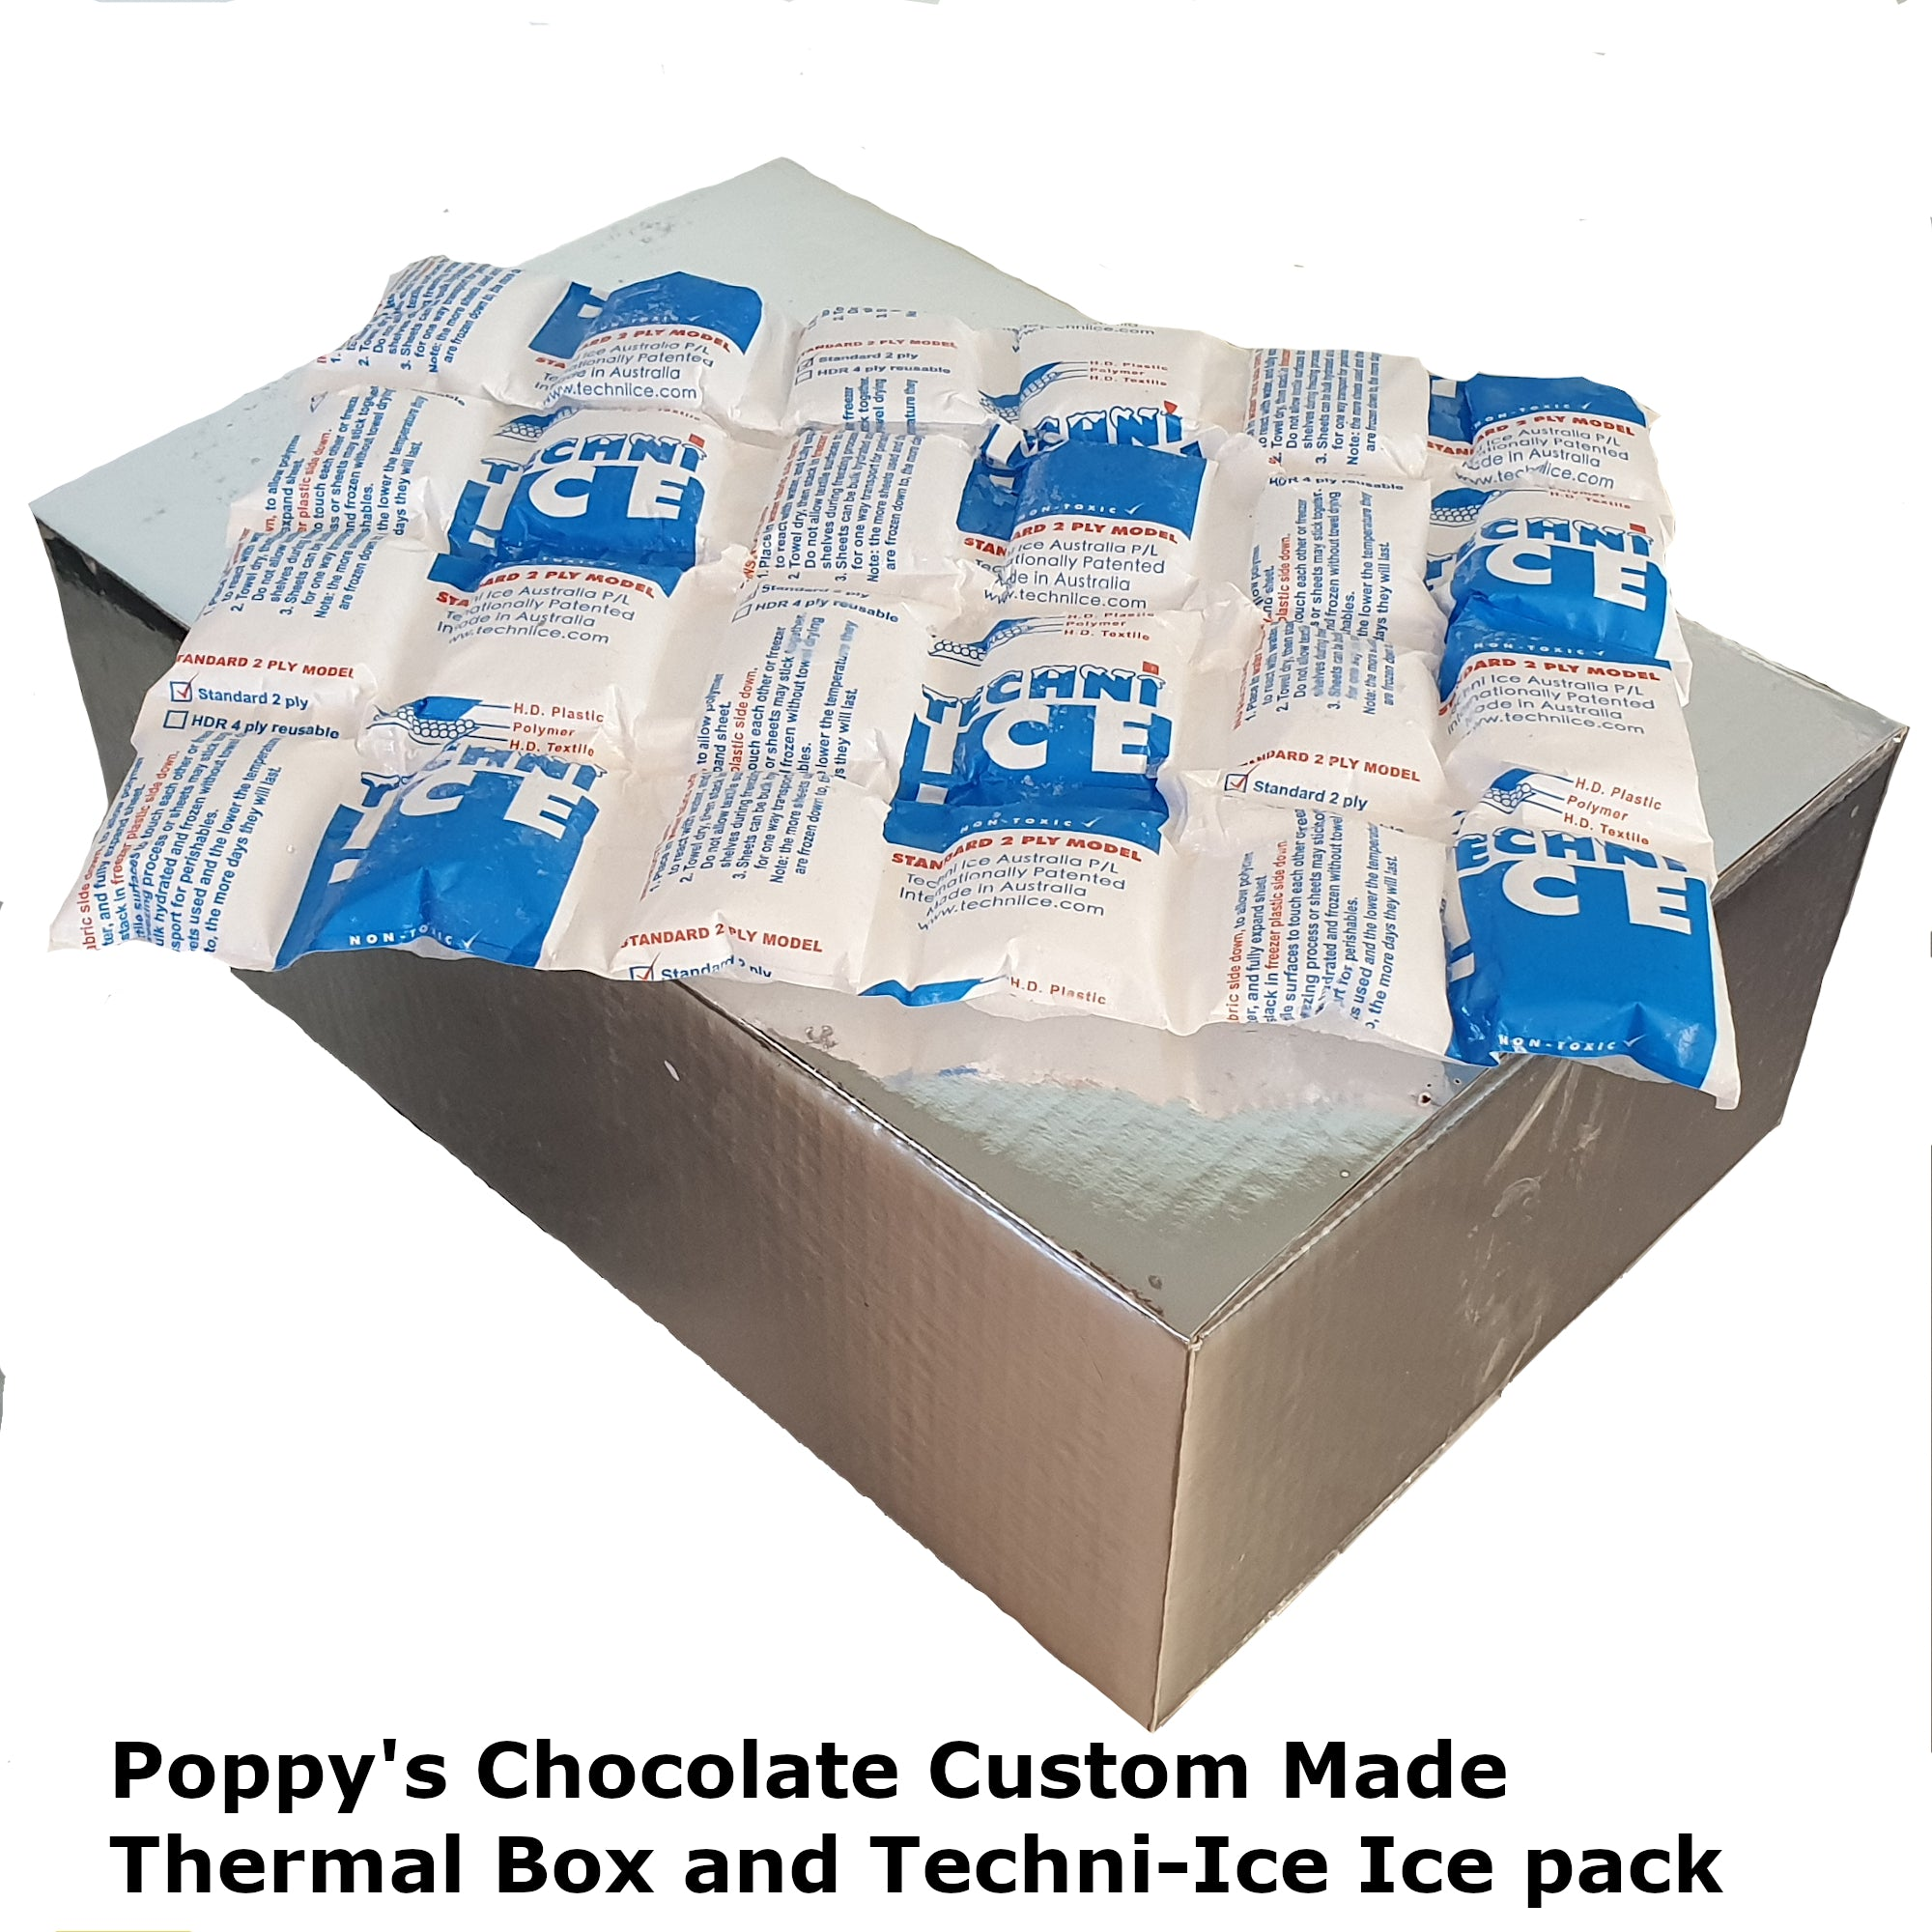 PROTECT CHOCOLATES FROM MELTING  - Pack in Thermal Box and Icepack packaging (if not purchased, order will ship in a cardboard box with no ice)